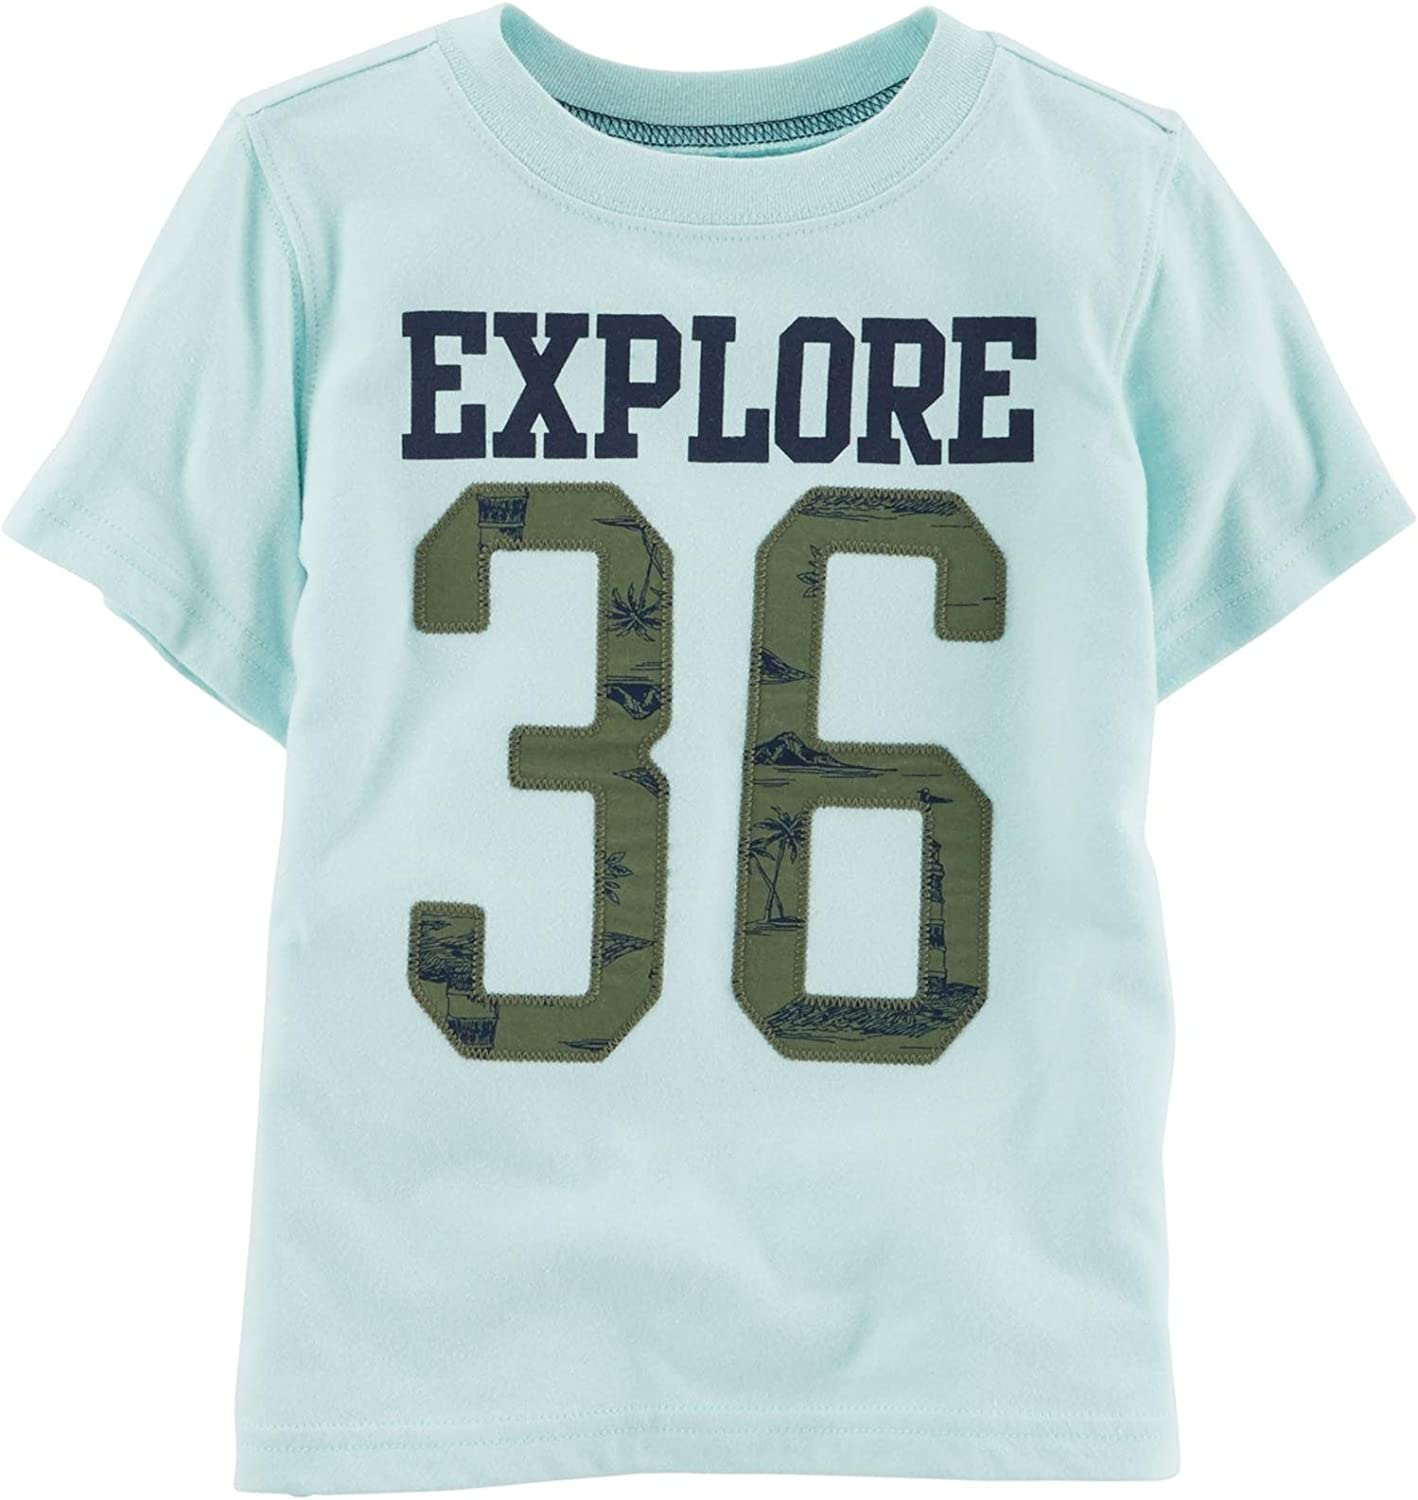 Carter's Little Boys' Graphic Tee (Toddler/Kid) - Explore 36-2T